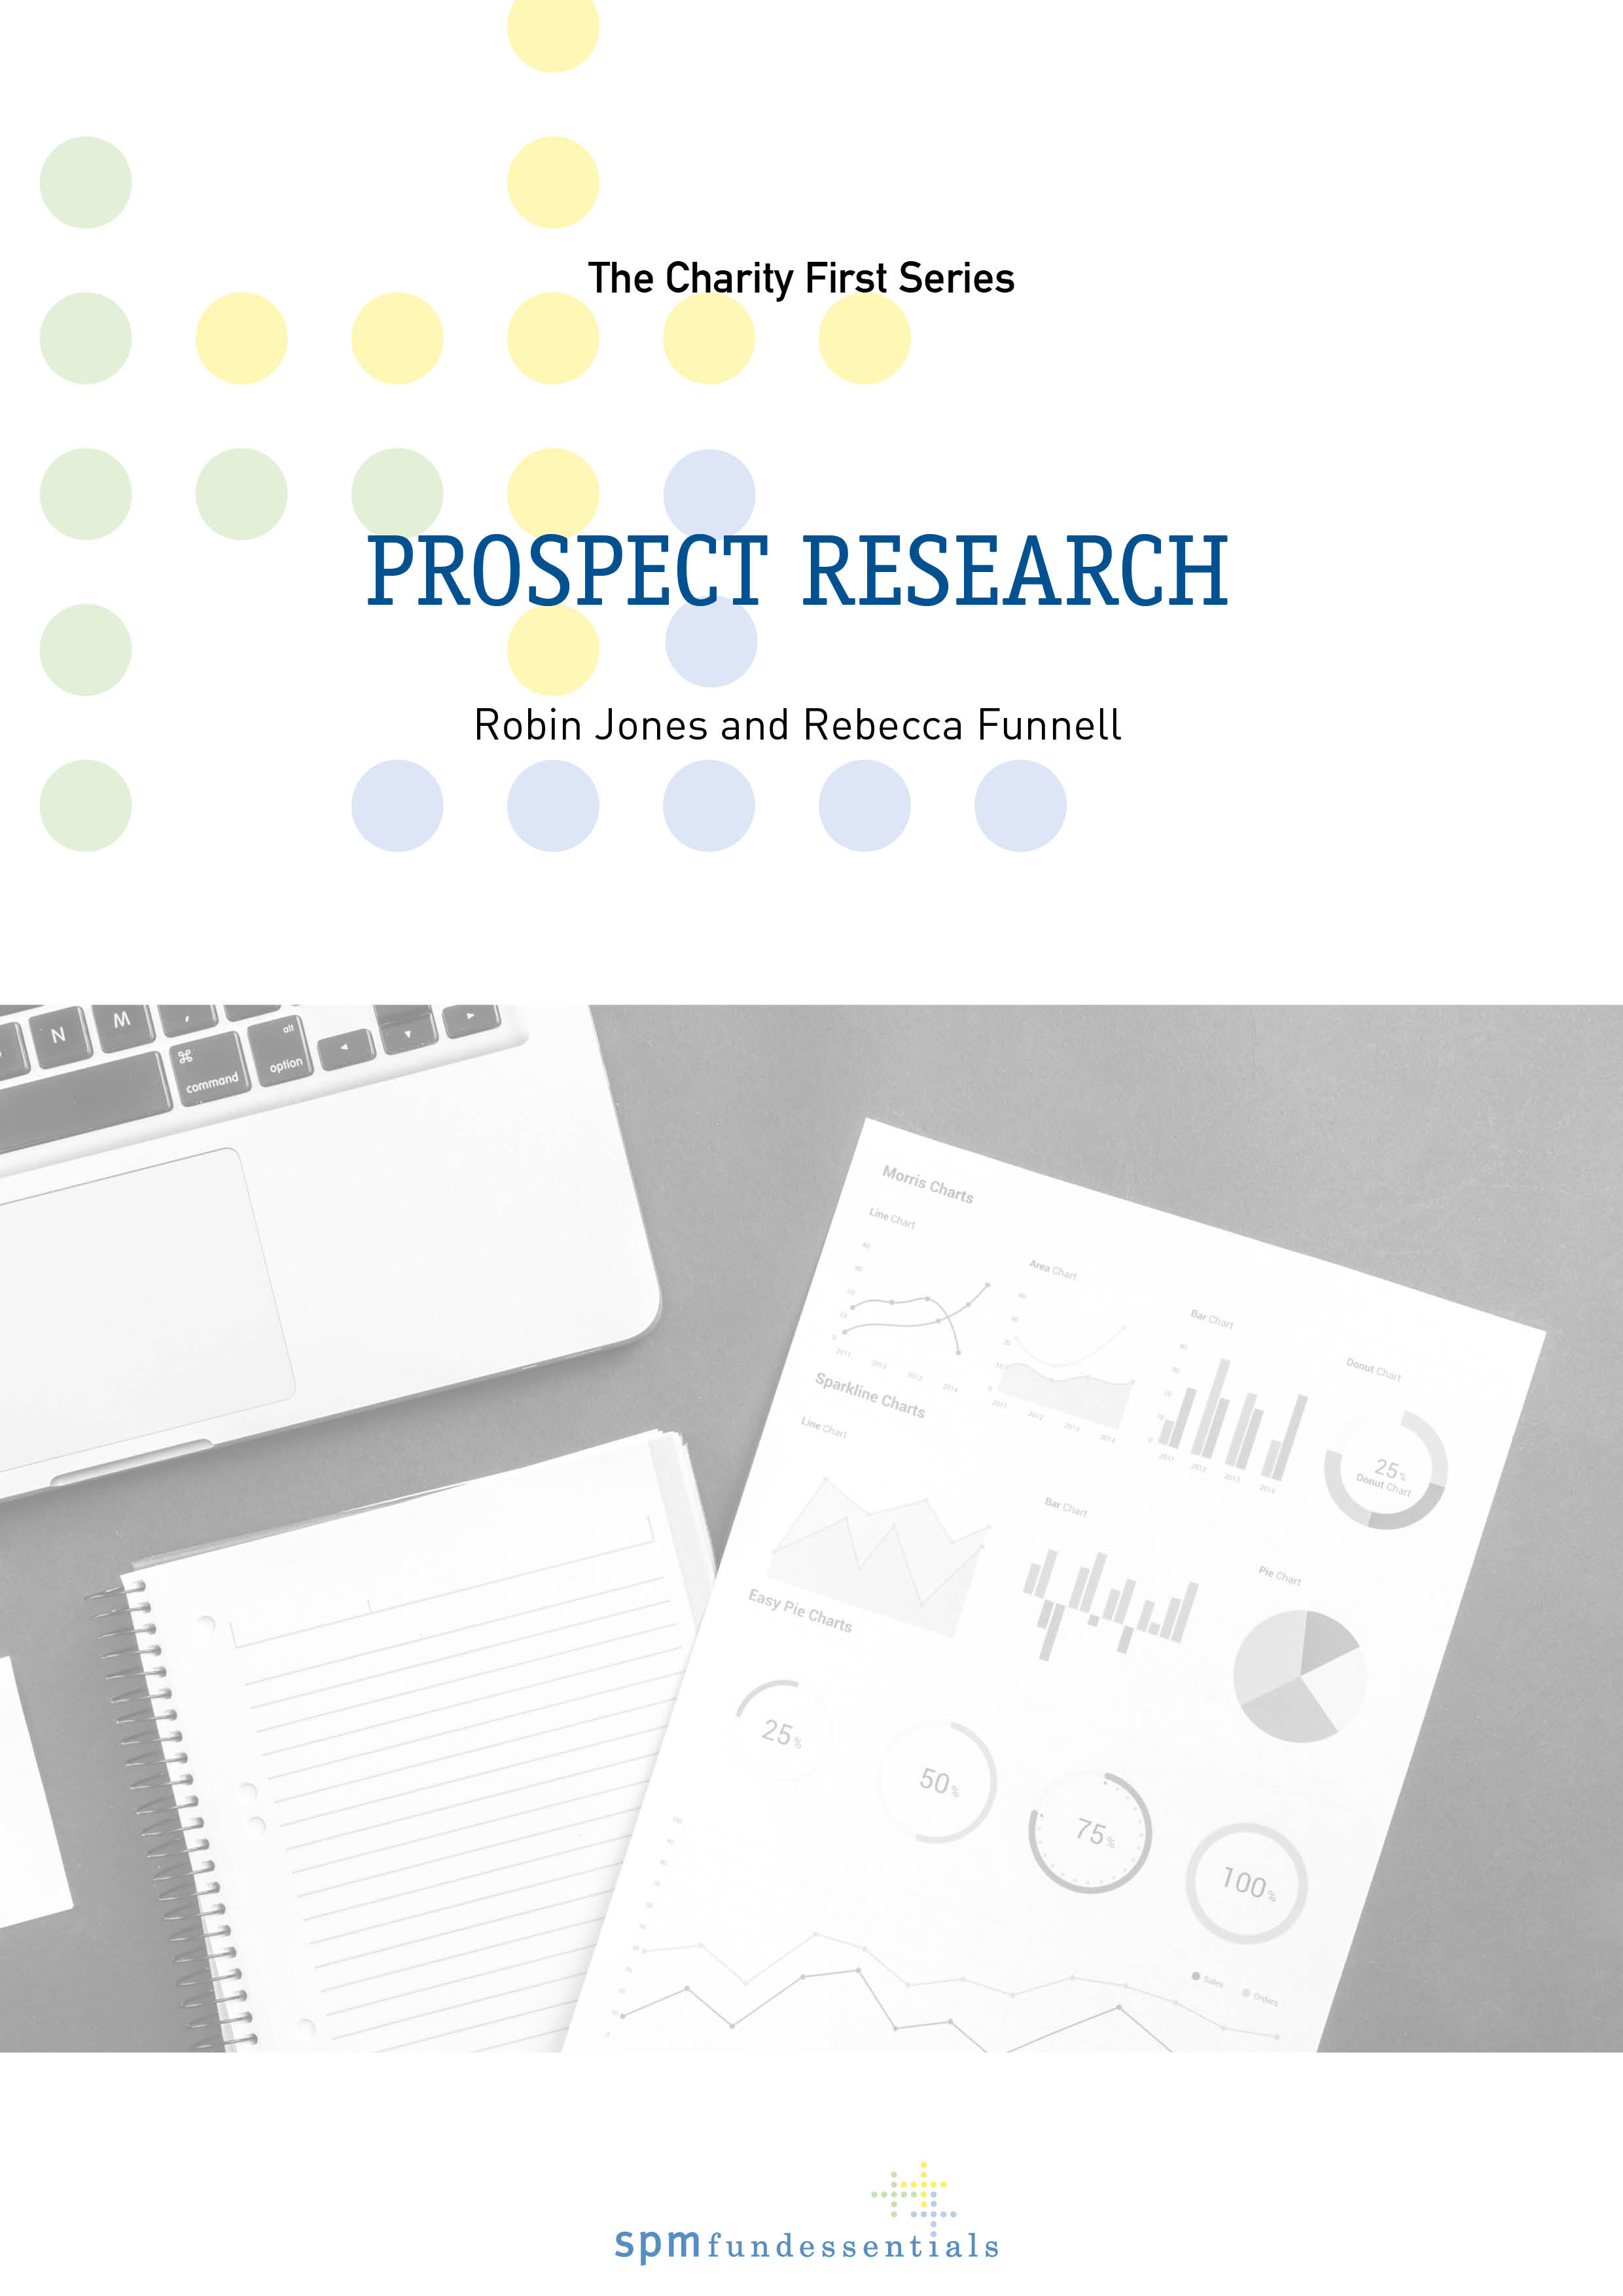 ProspectResearch